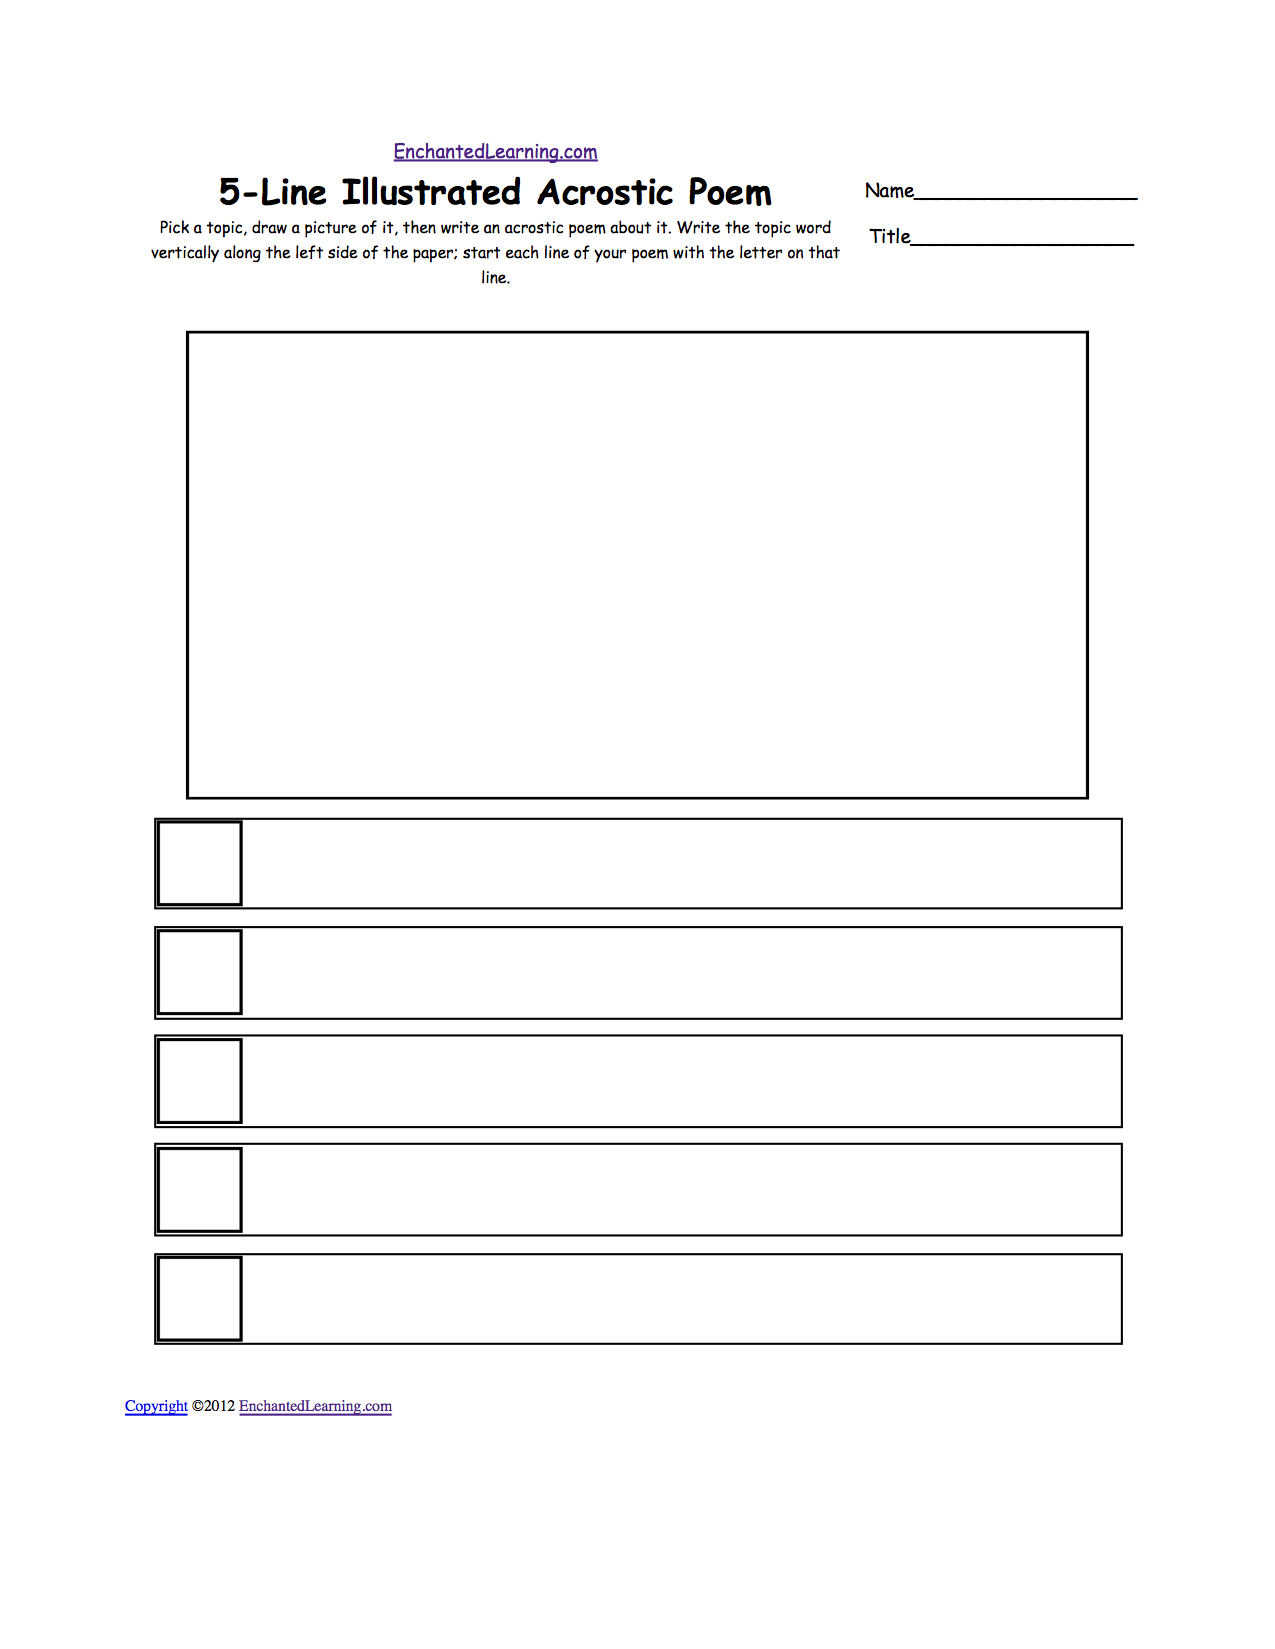 Blank Illustrated Acrostic Poem Worksheets Worksheet Printout – Poem Worksheets